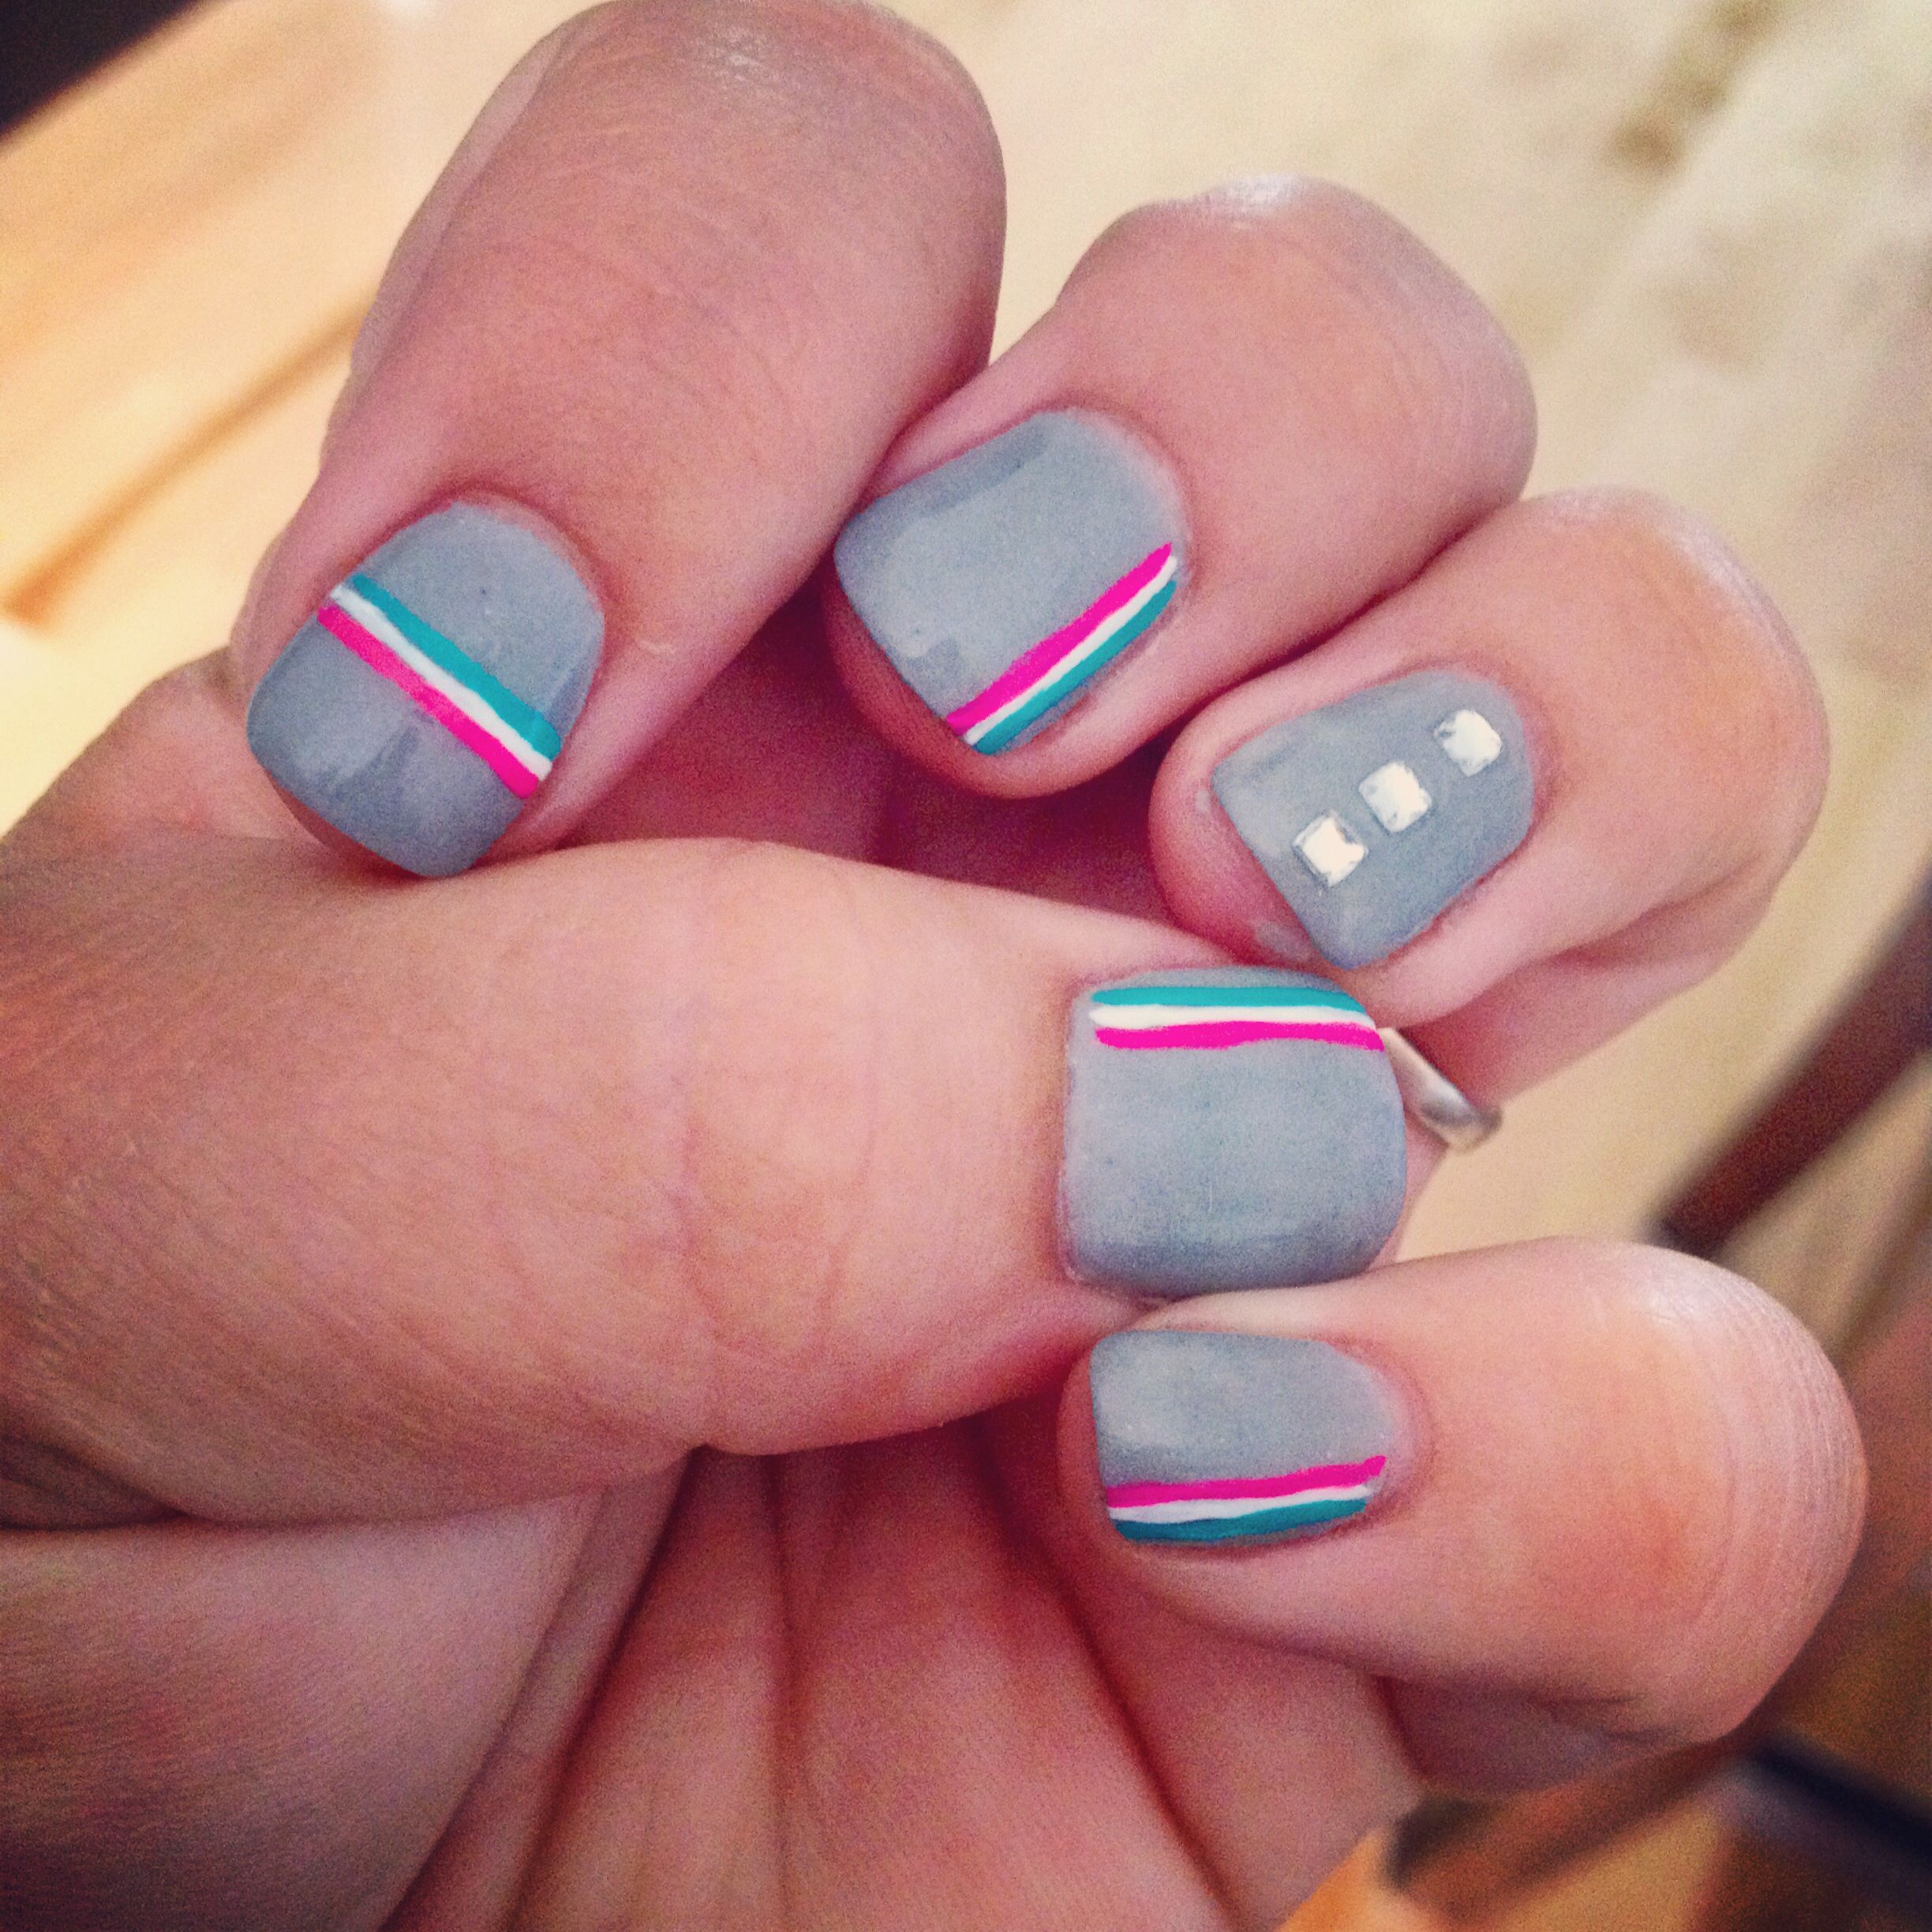 Nails ongles gris bling bling et rose blanc turquoise for Gris et turquoise